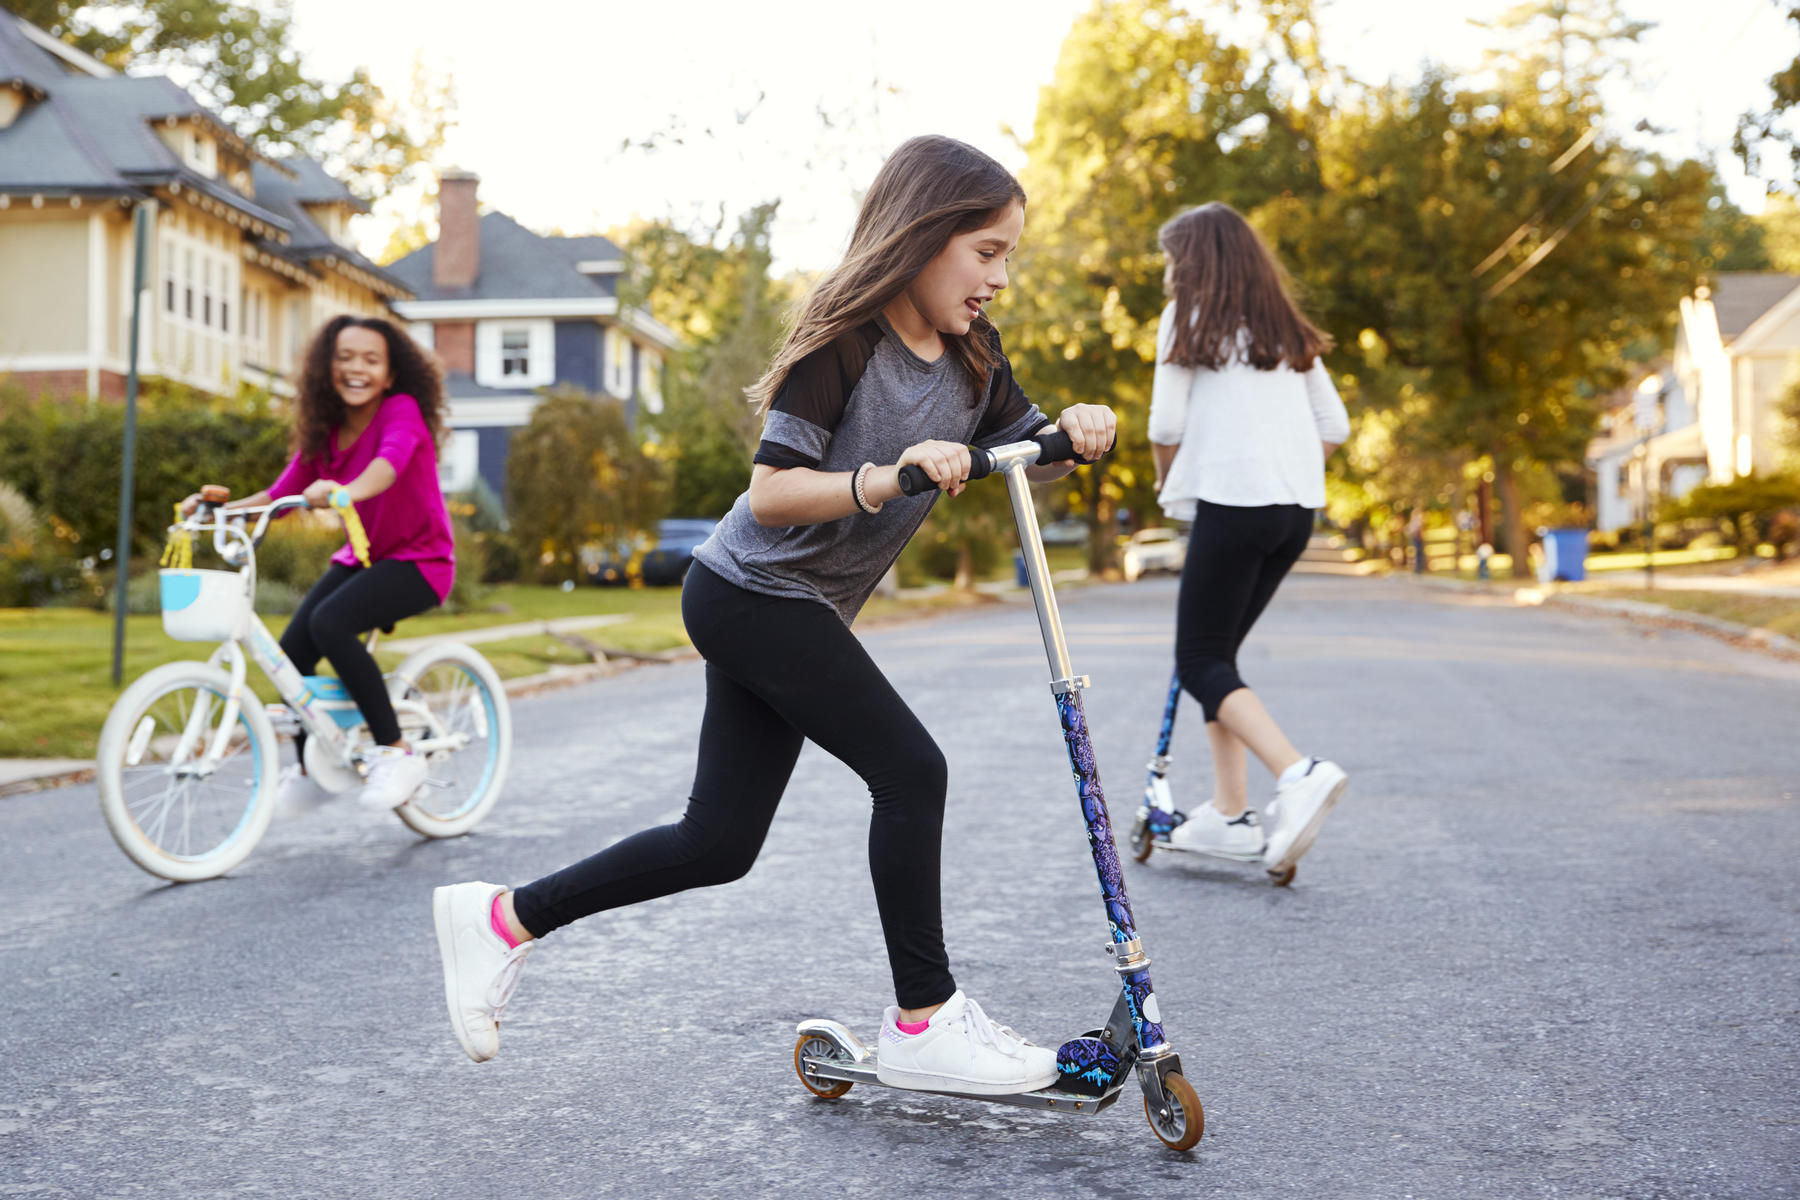 Girls Playing in Street Riding Scooters and Bike